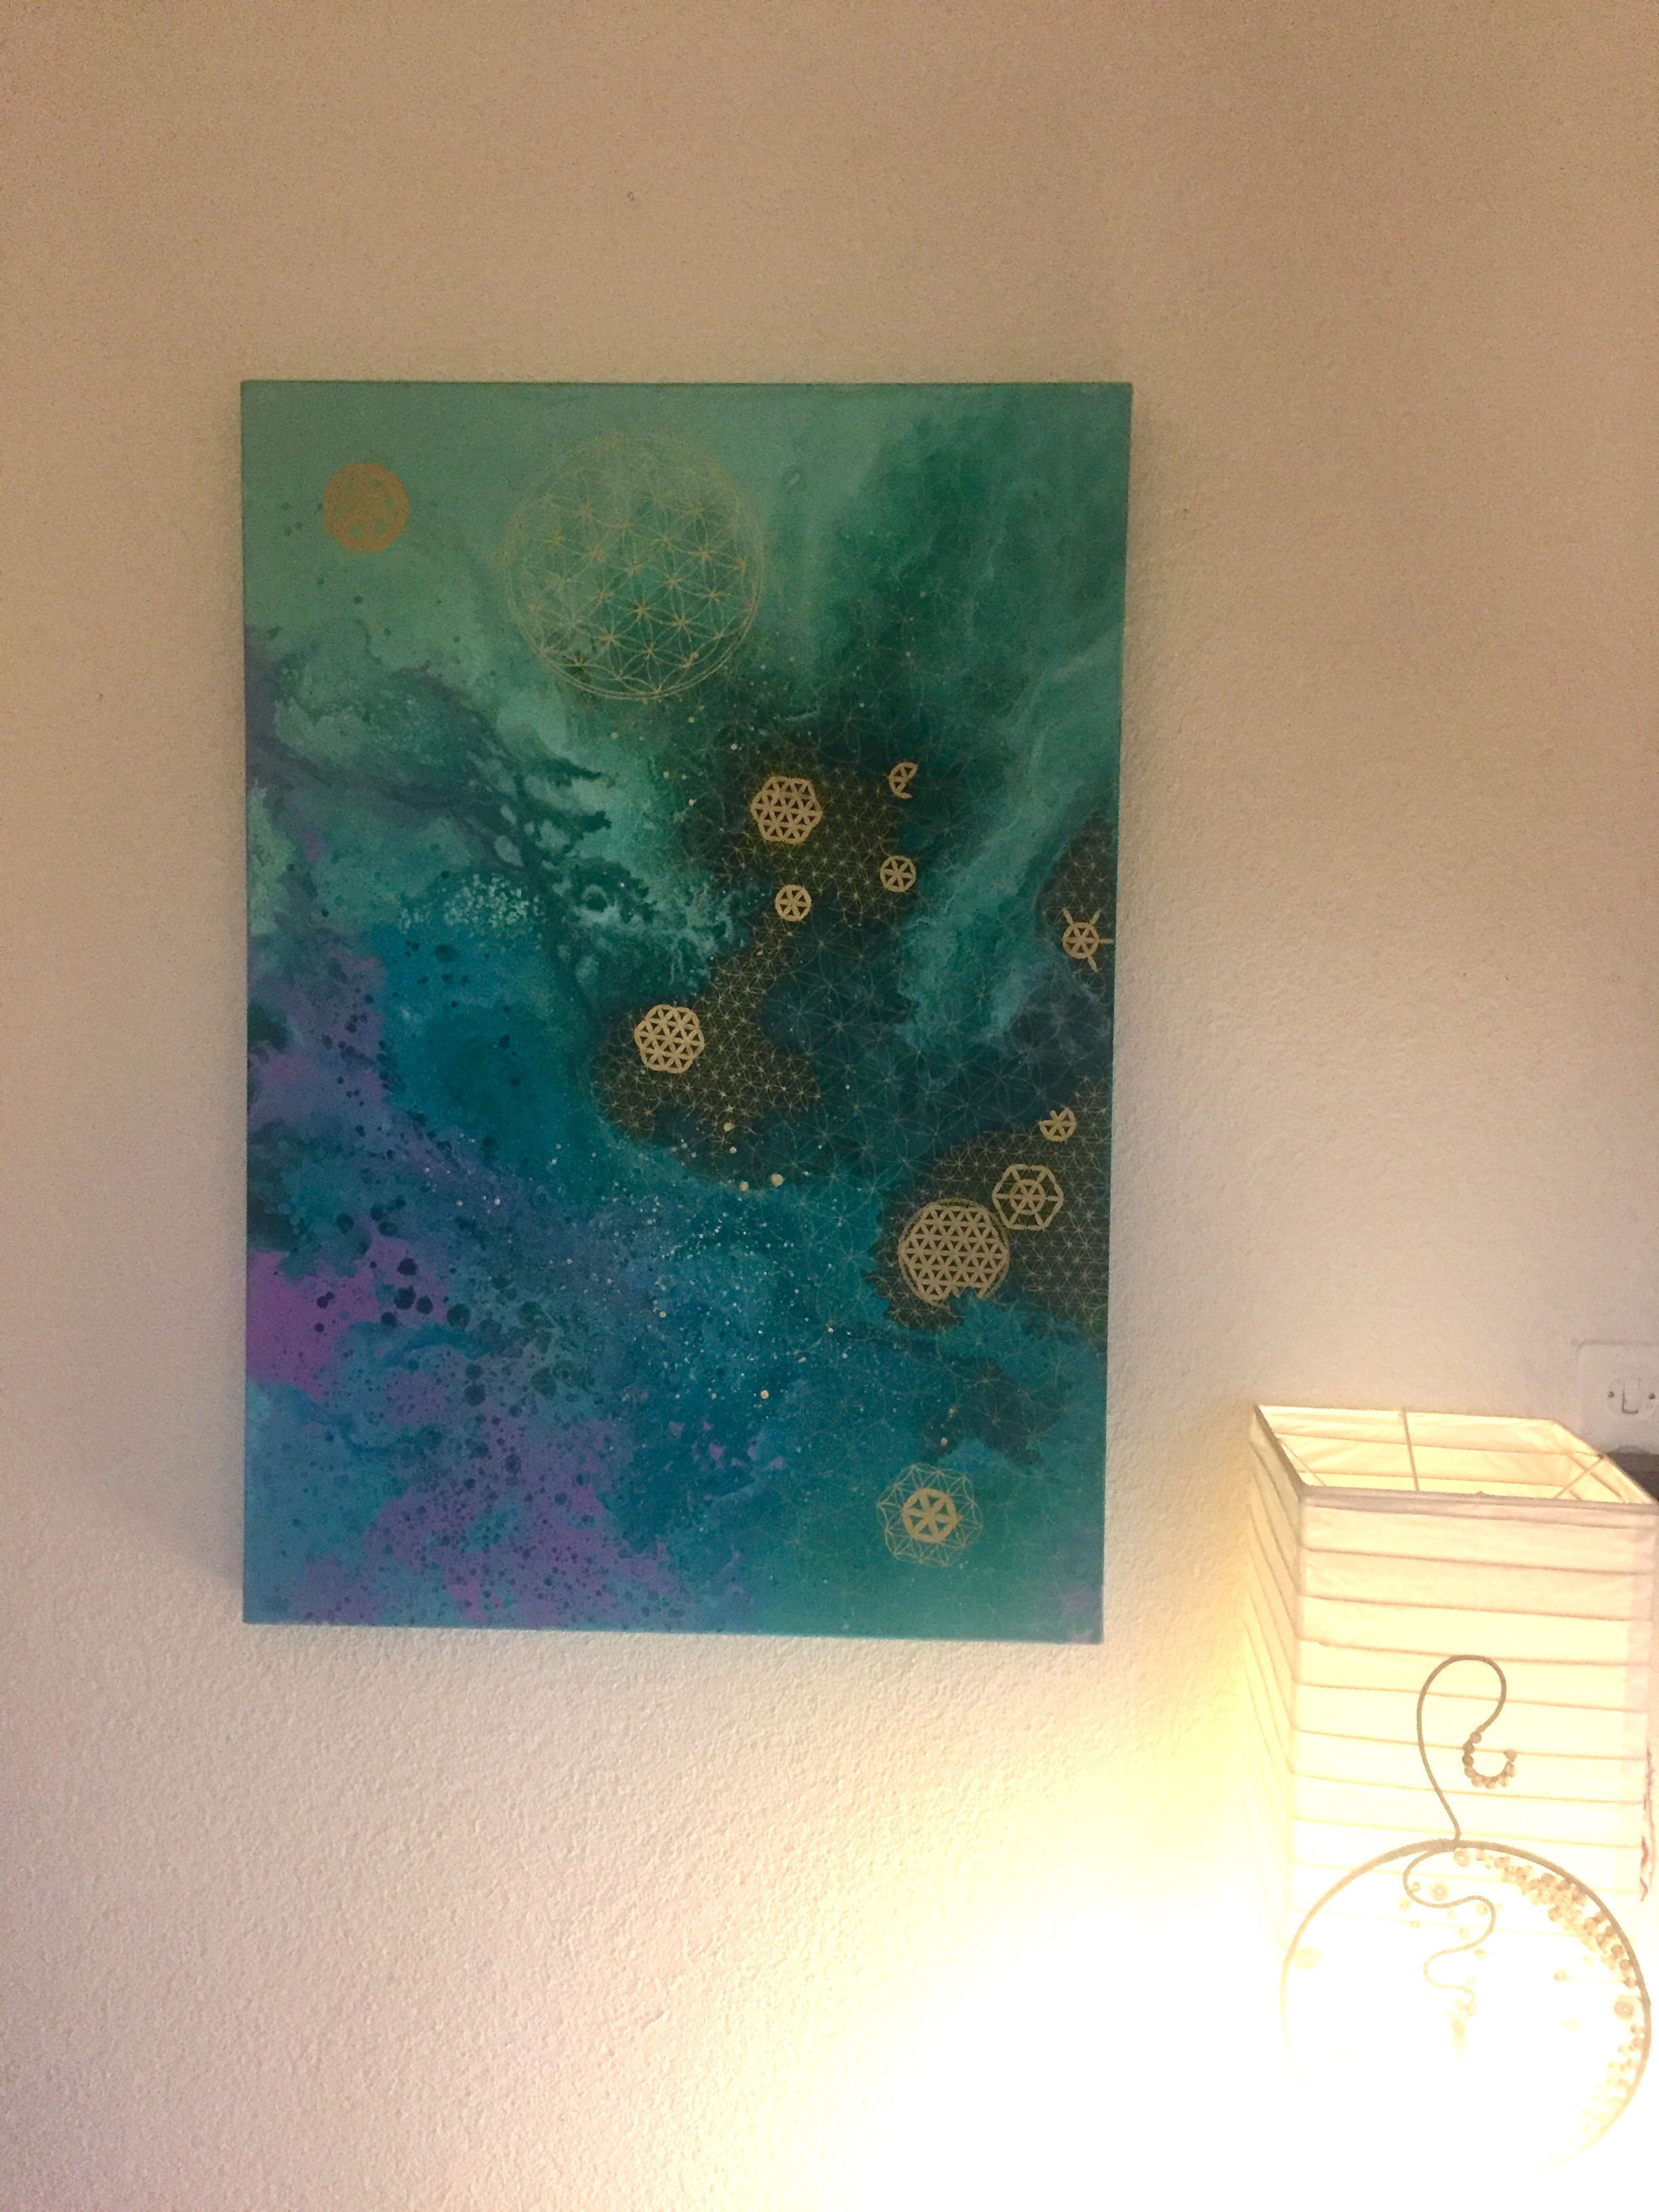 Flower of life - 700 CHF - SOLD